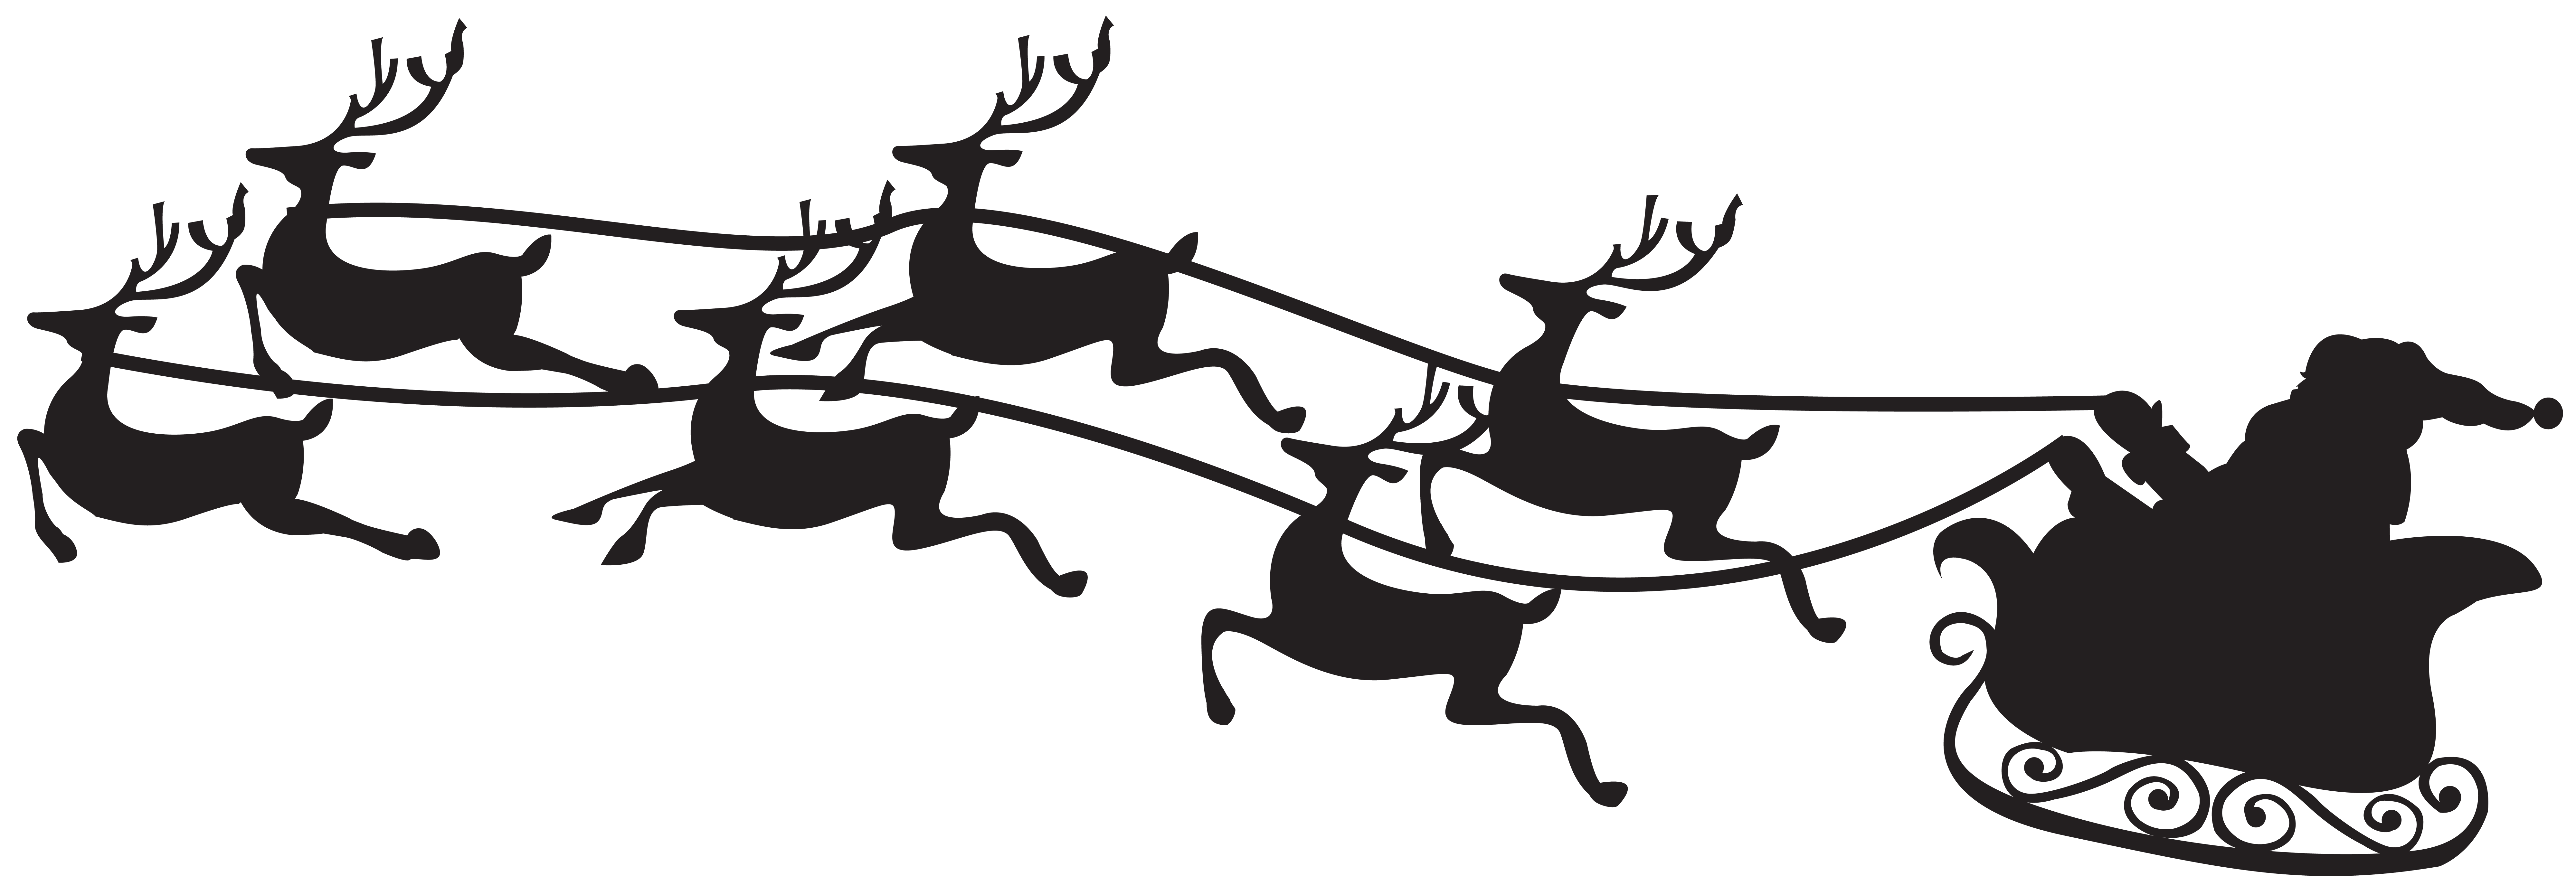 Santa sleigh clipart silhouette vector royalty free library Santa on Sled Silhouette PNG Clip Art Image | Gallery ... vector royalty free library